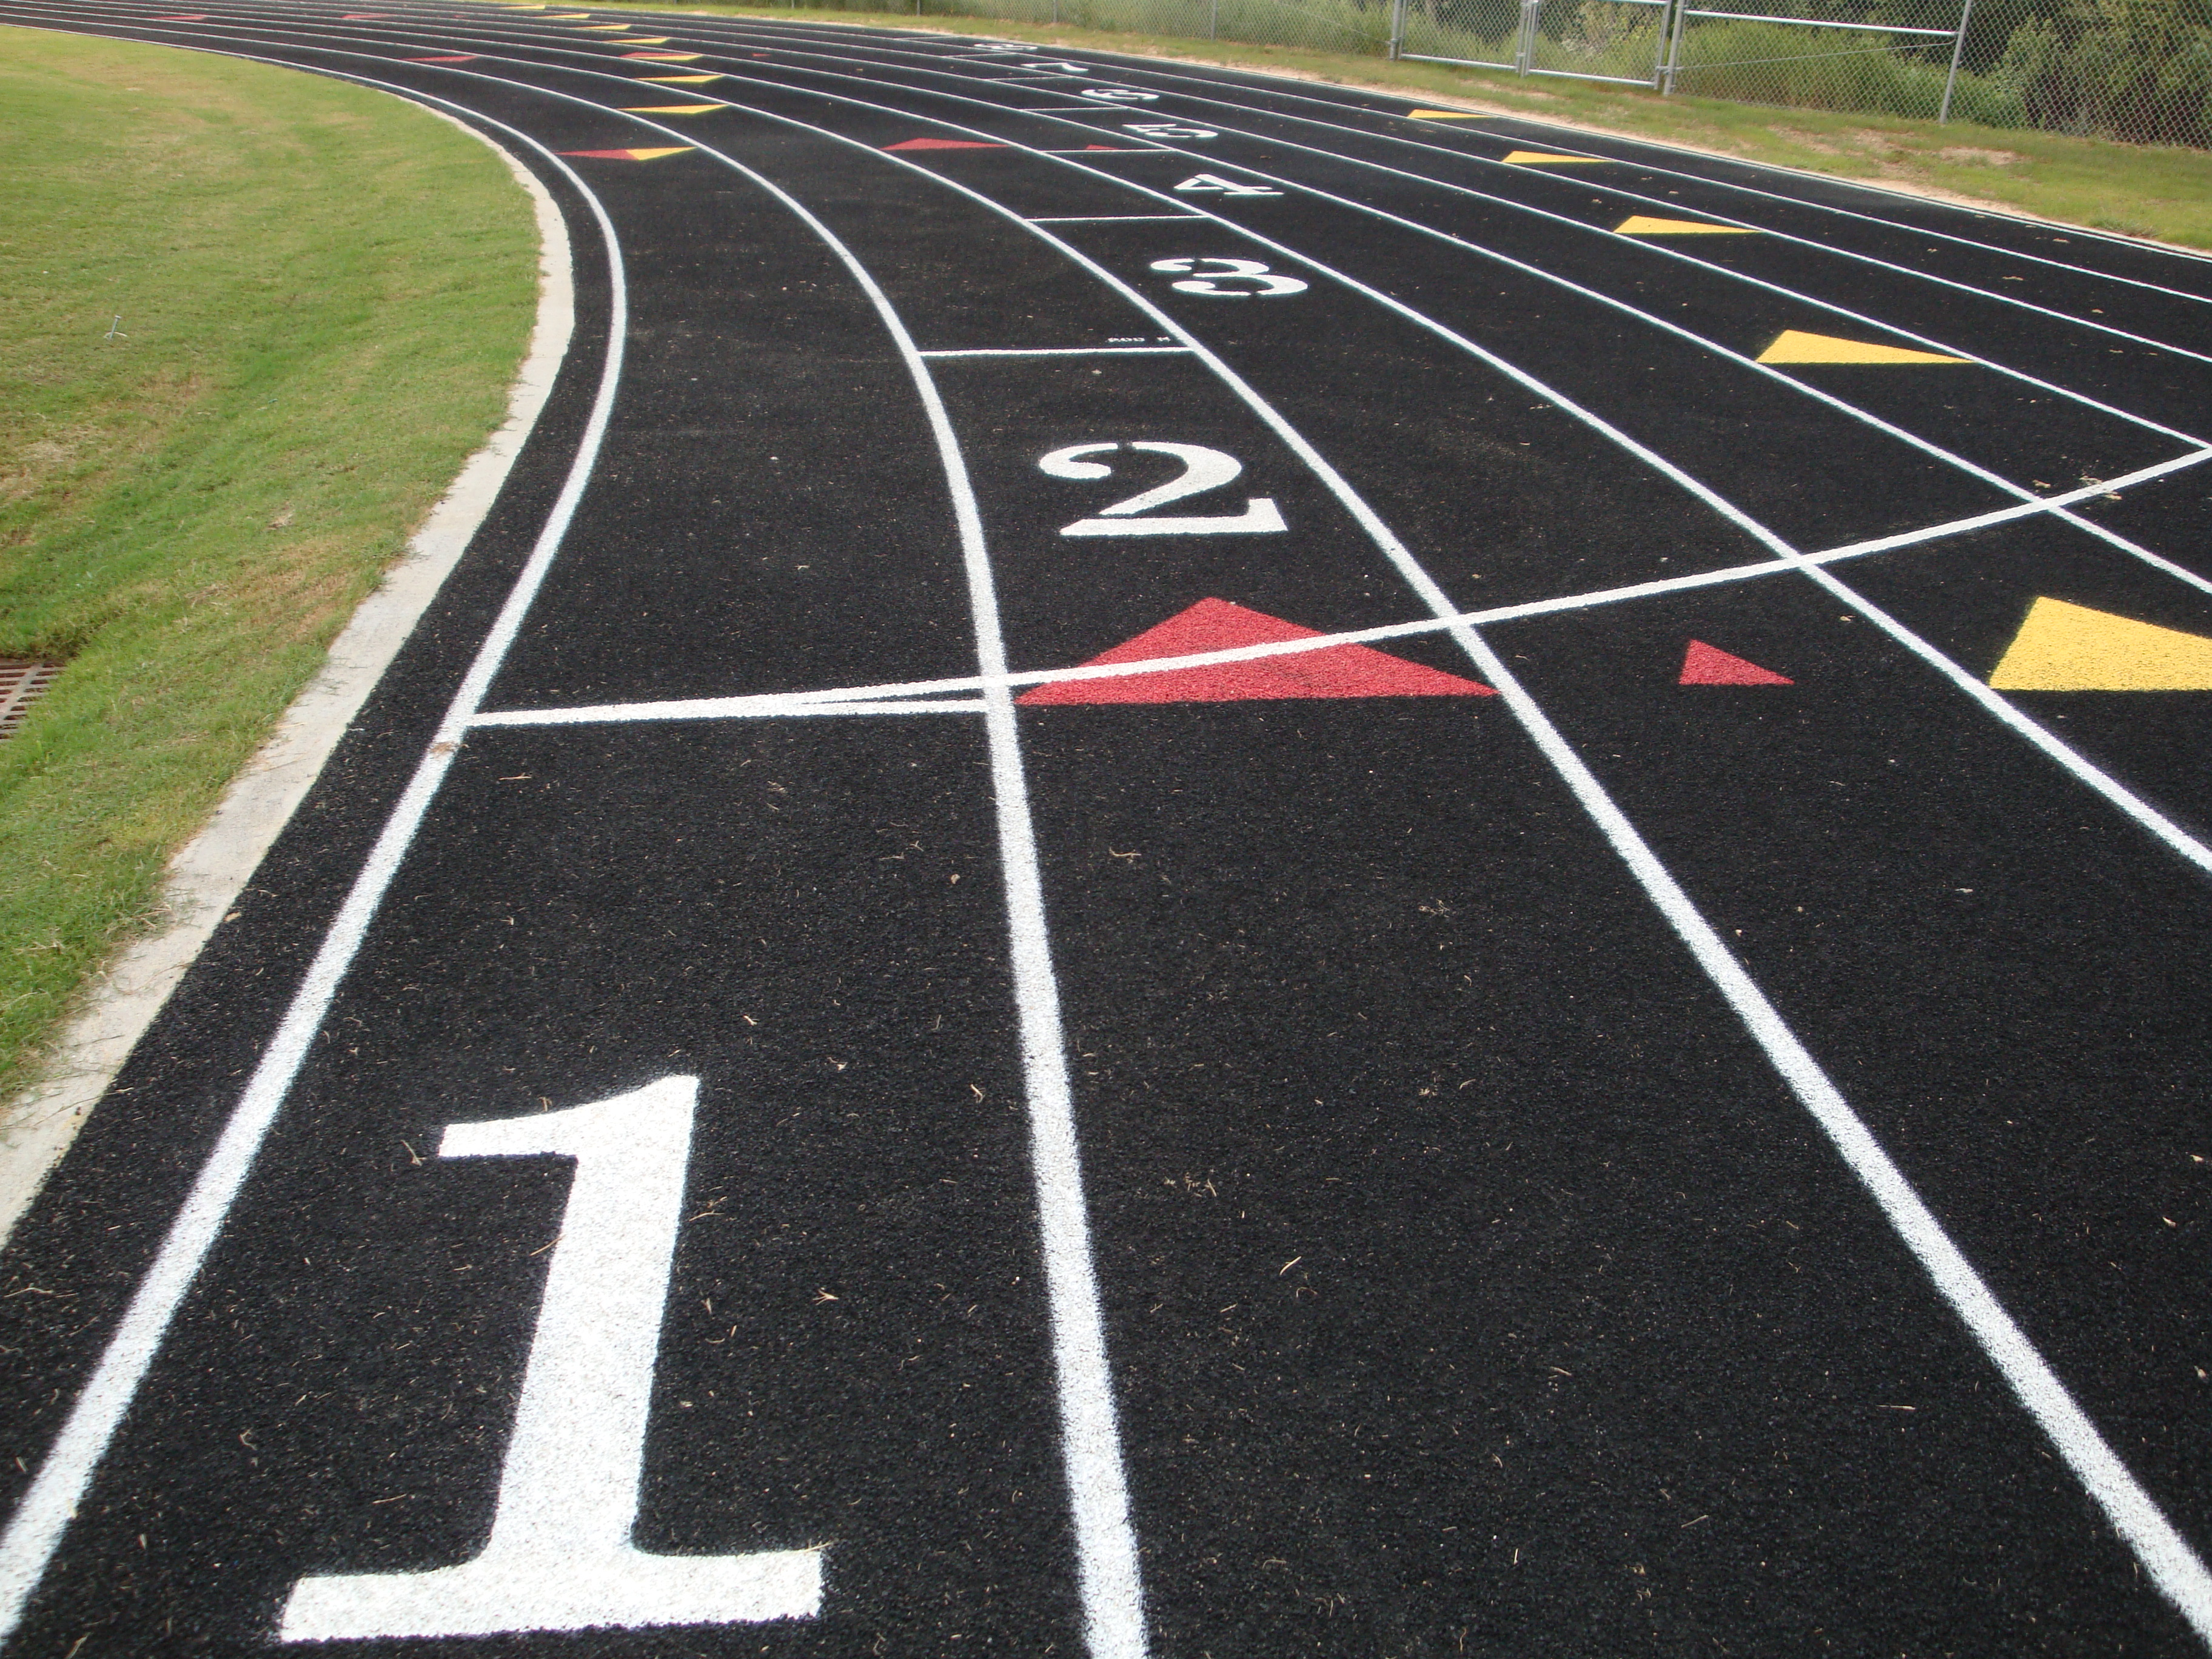 NHS track to be resurfaced, board approves $100K bid ...